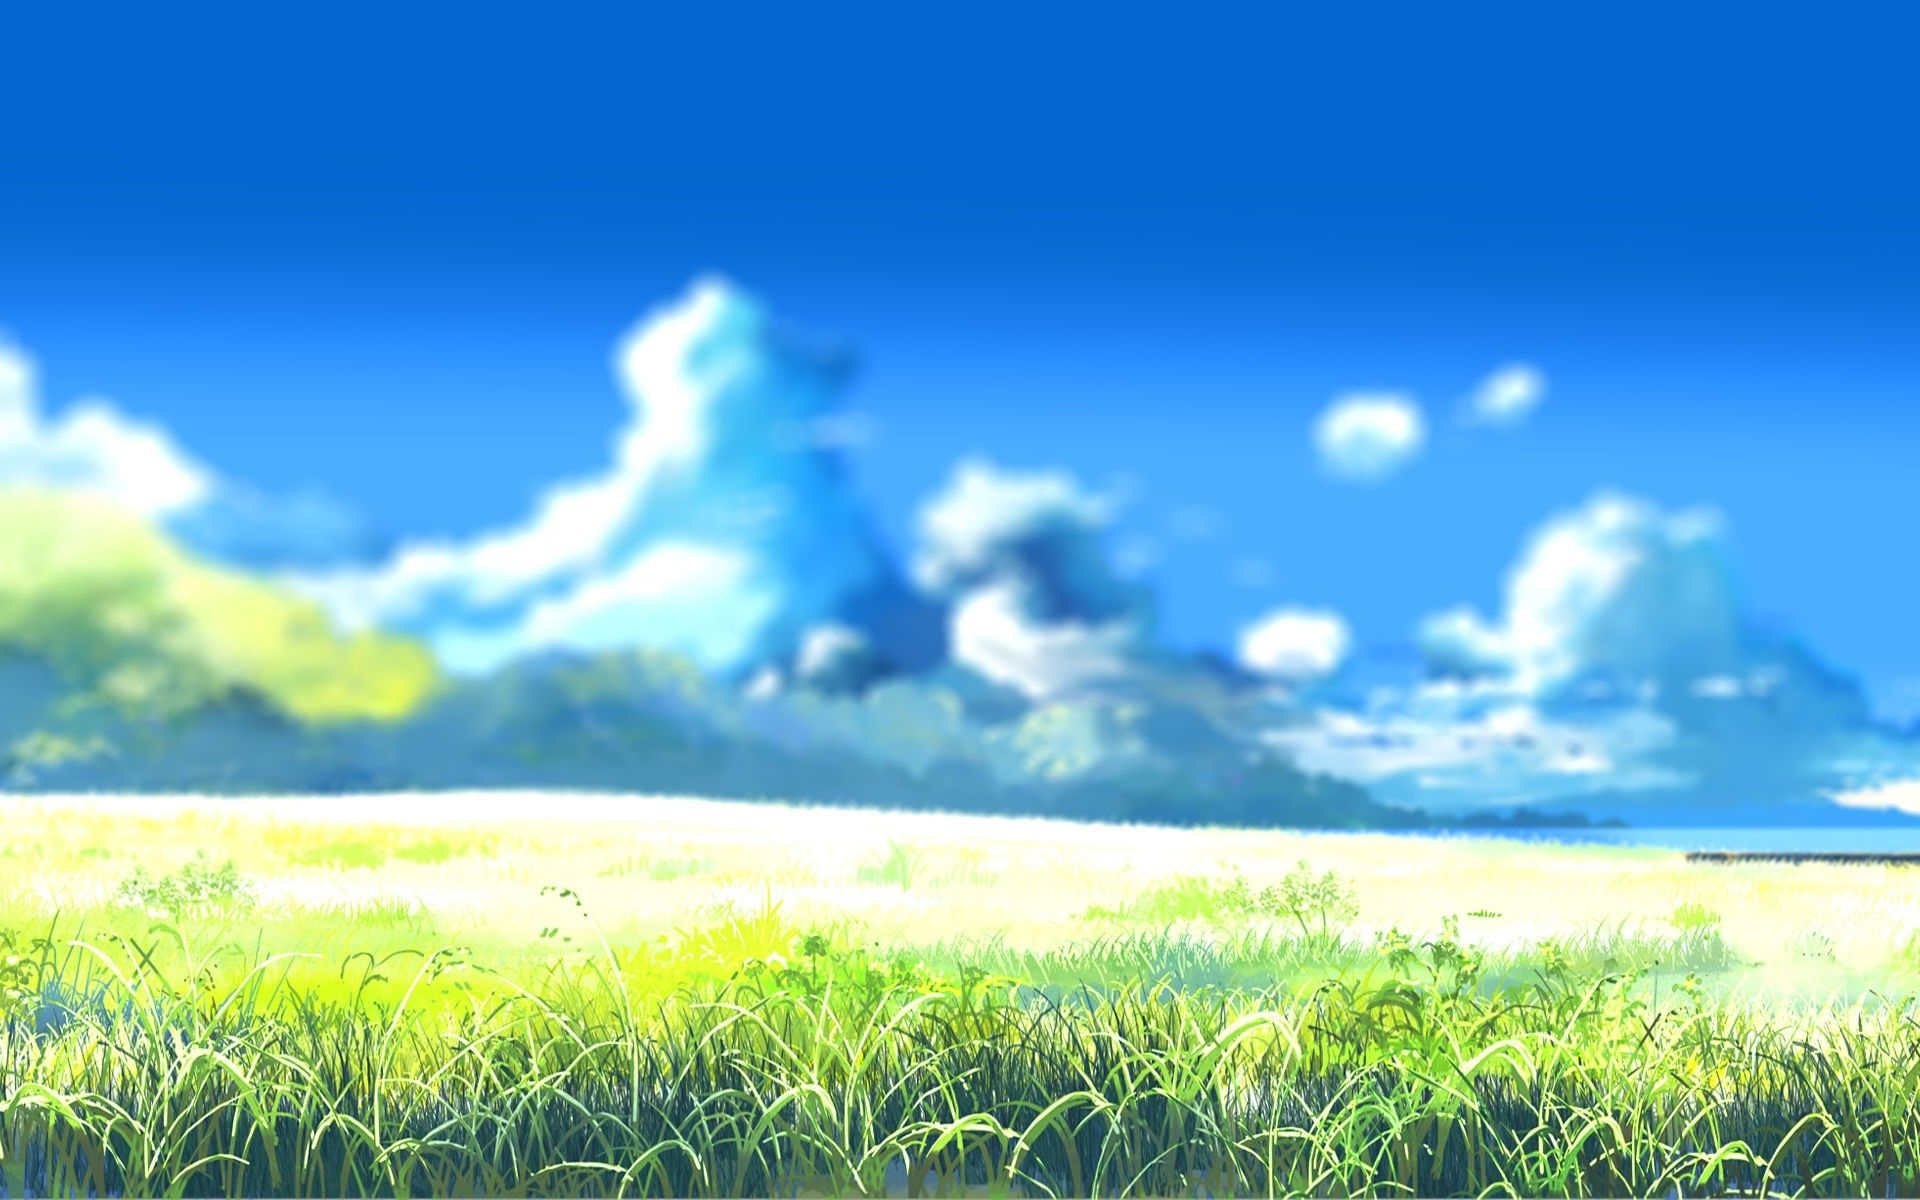 Drawing Landscape Anime Landscape Nature Drawing Blurred Wallpapers Hd Desktop And Jpg 1920 1200 Landscape Nature Nature Drawing